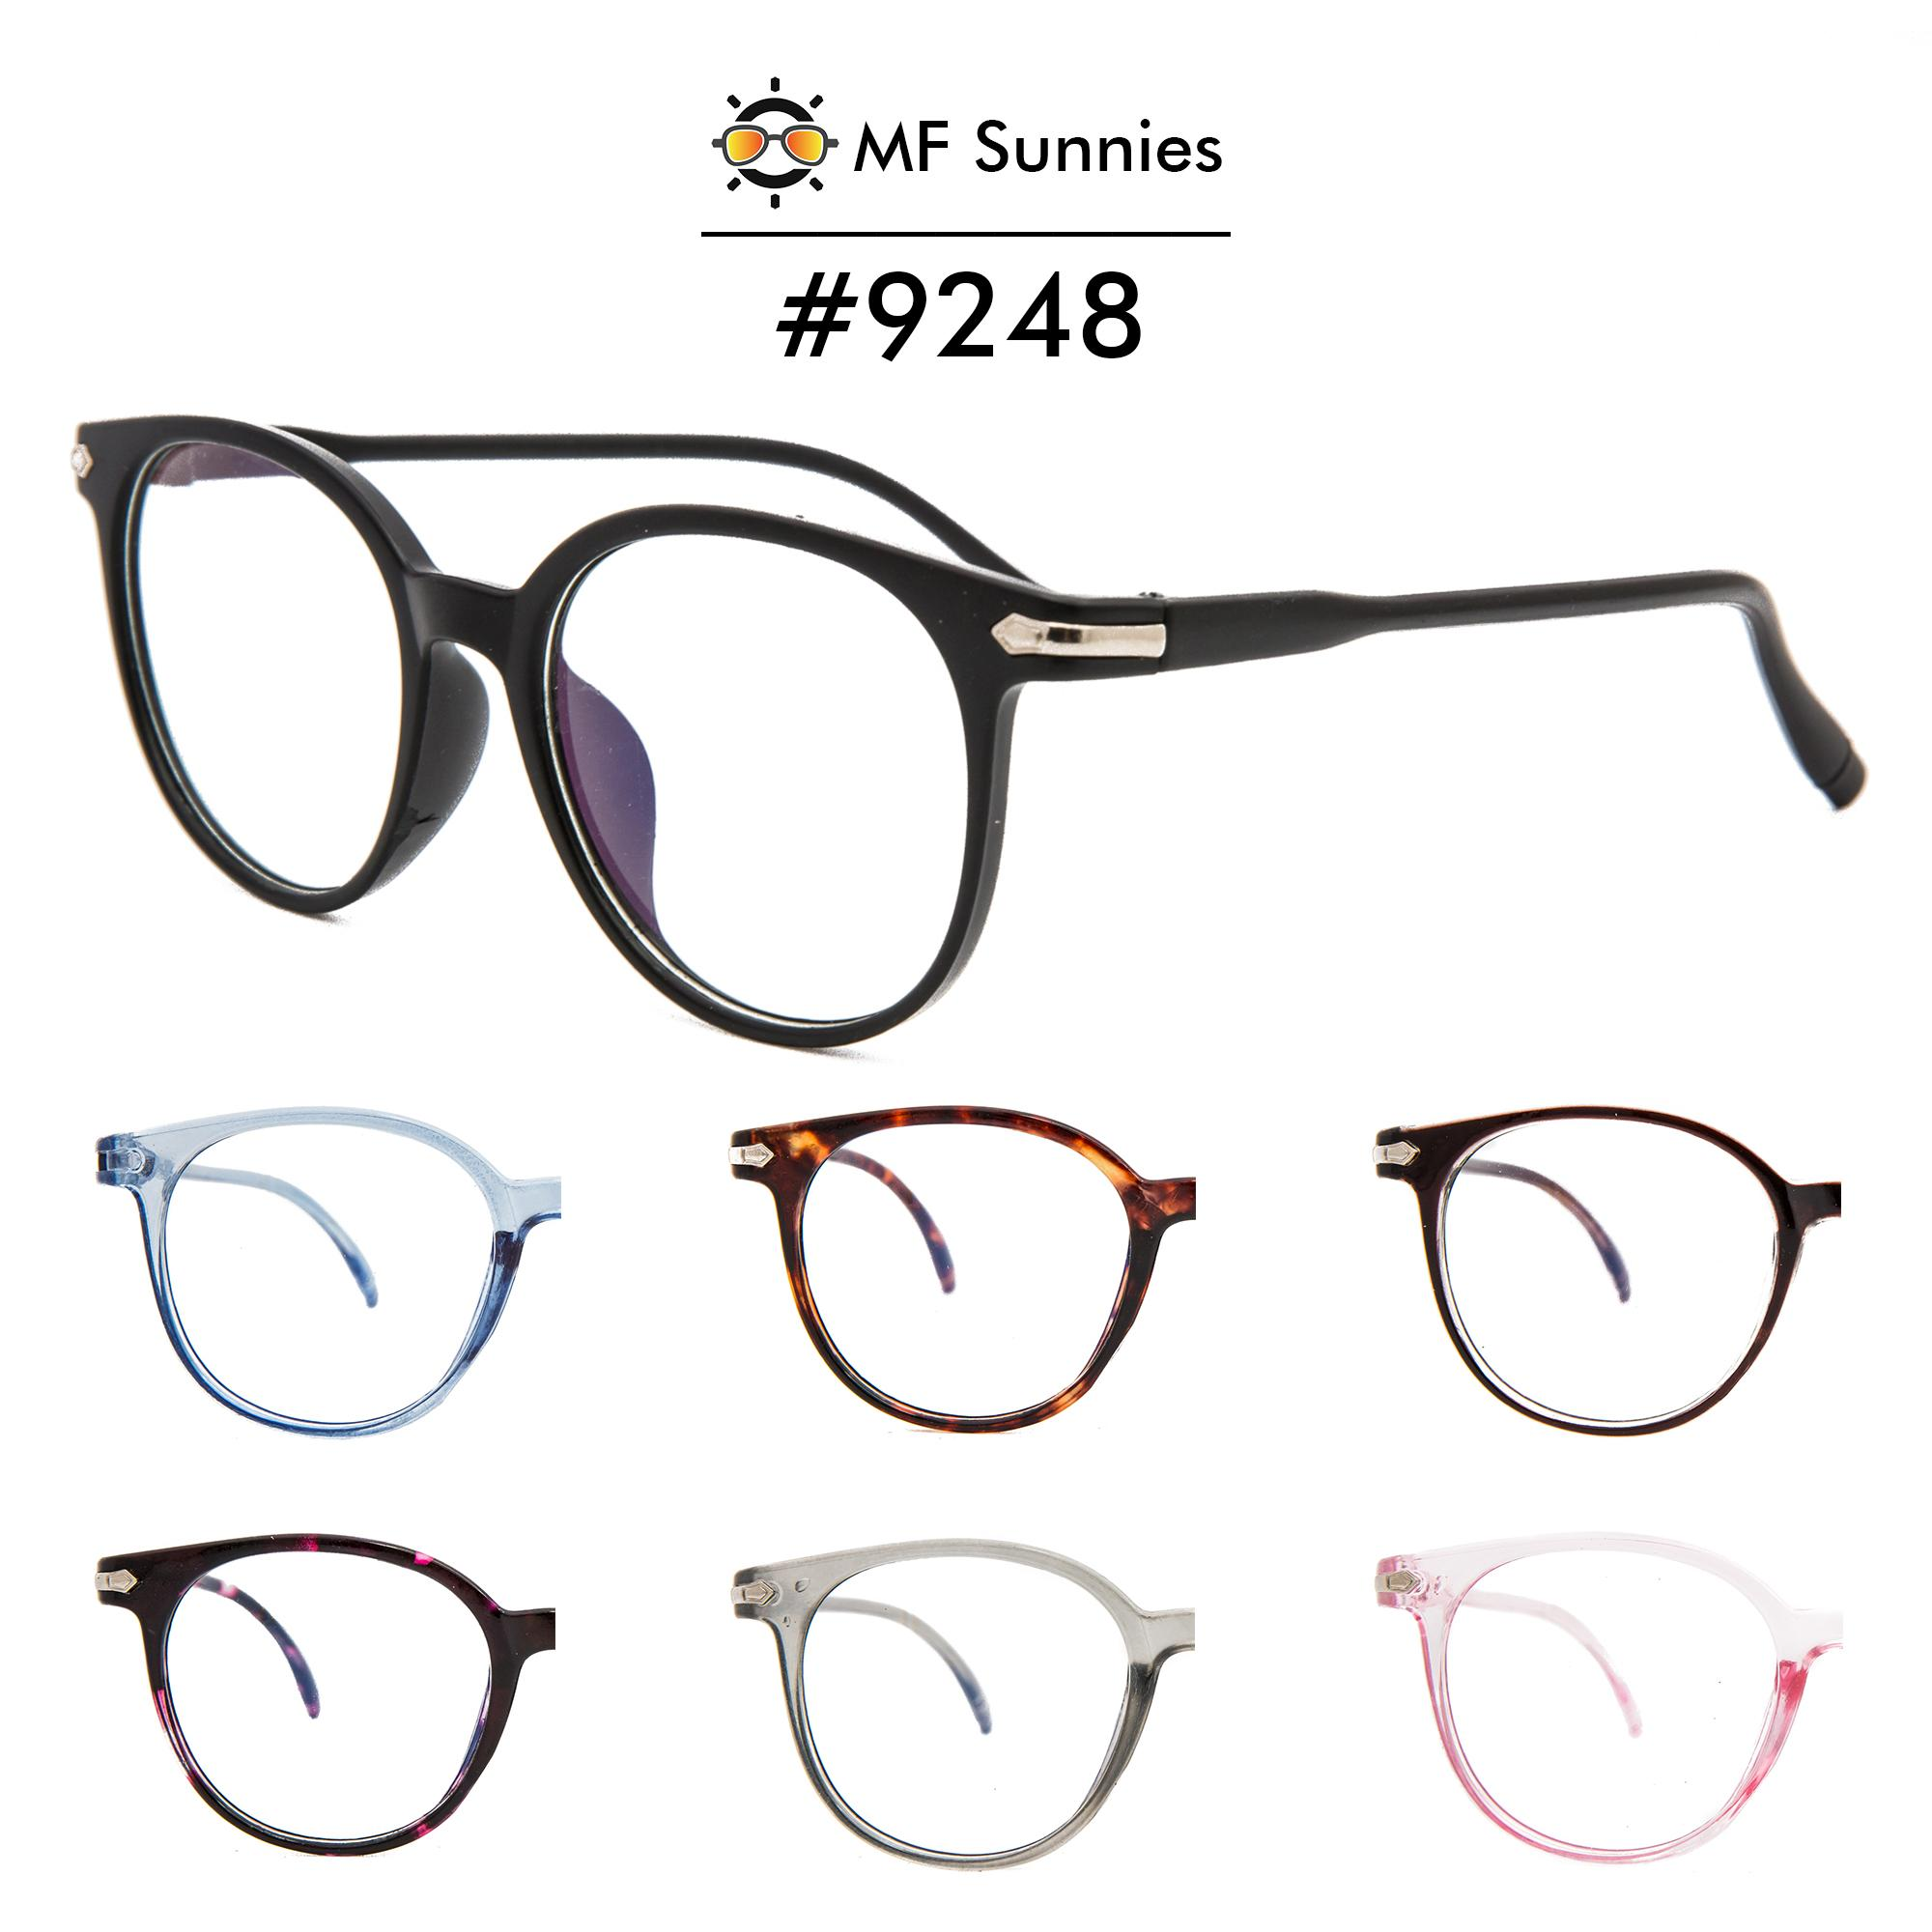 445df70f19d MFSunnies Computer Anti-Radiation   Anti-Blue Light Flexible Frame Fashion  Eyewear  9248